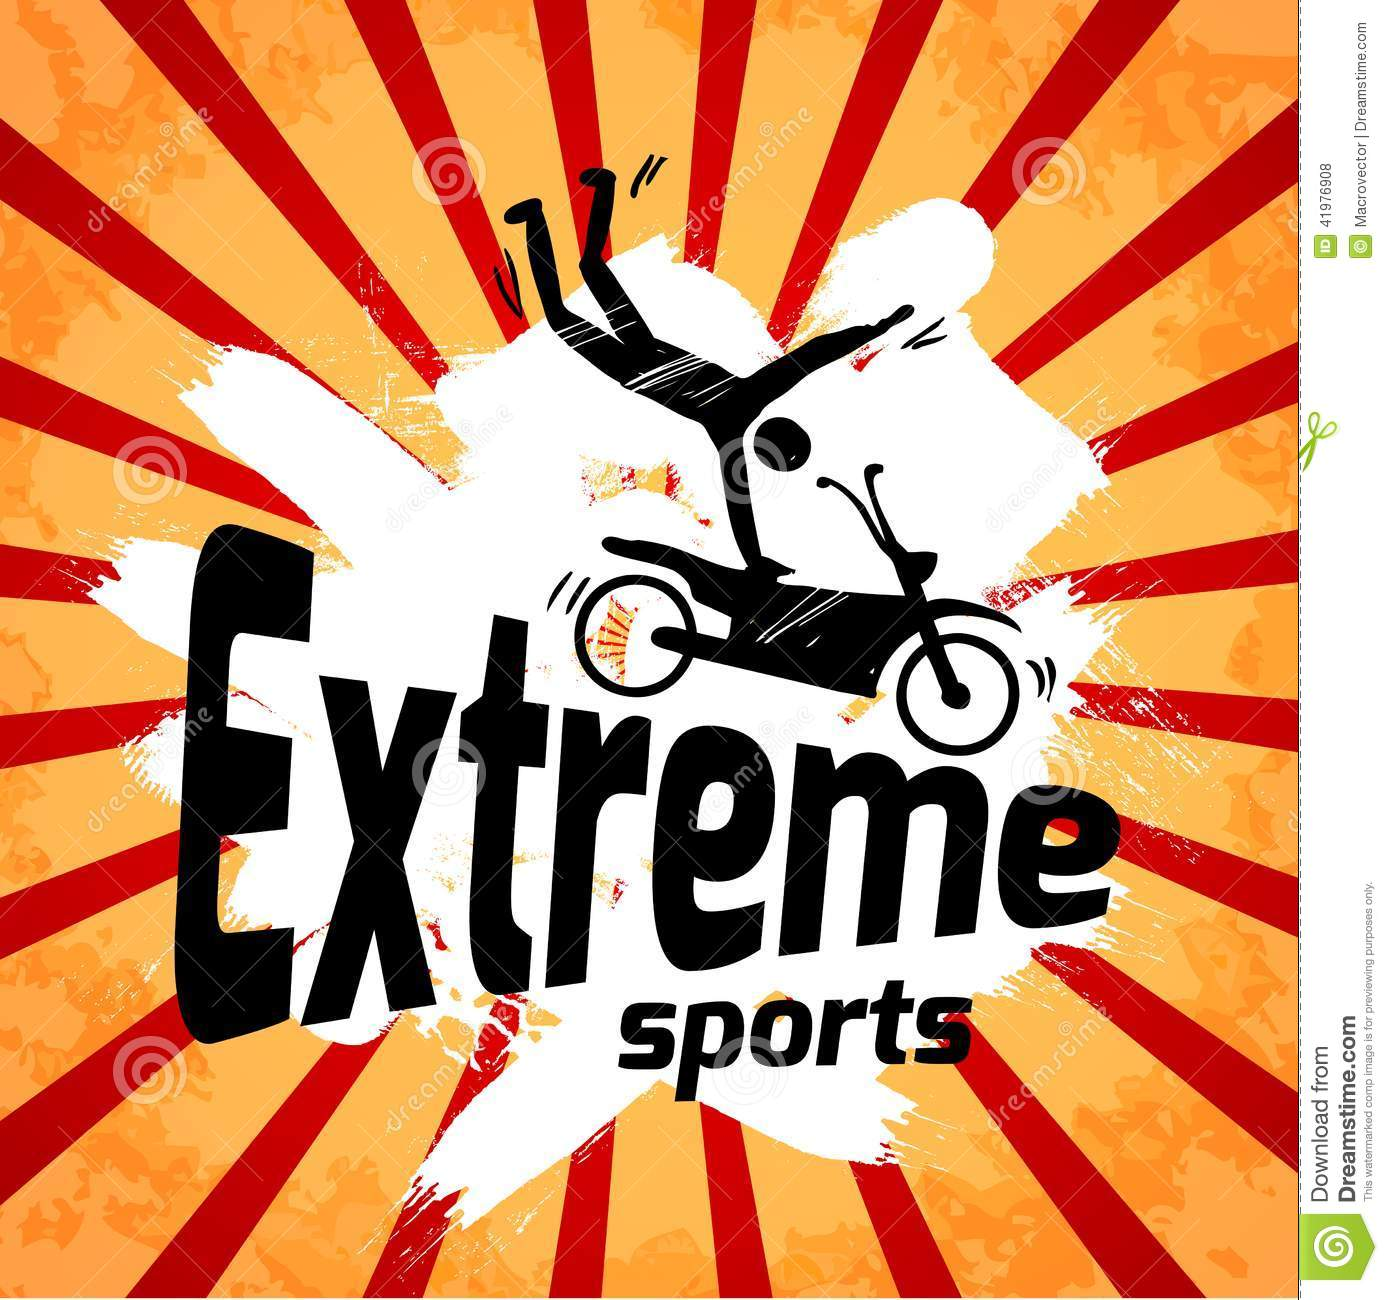 Extreme Sports Poster Stock Vector